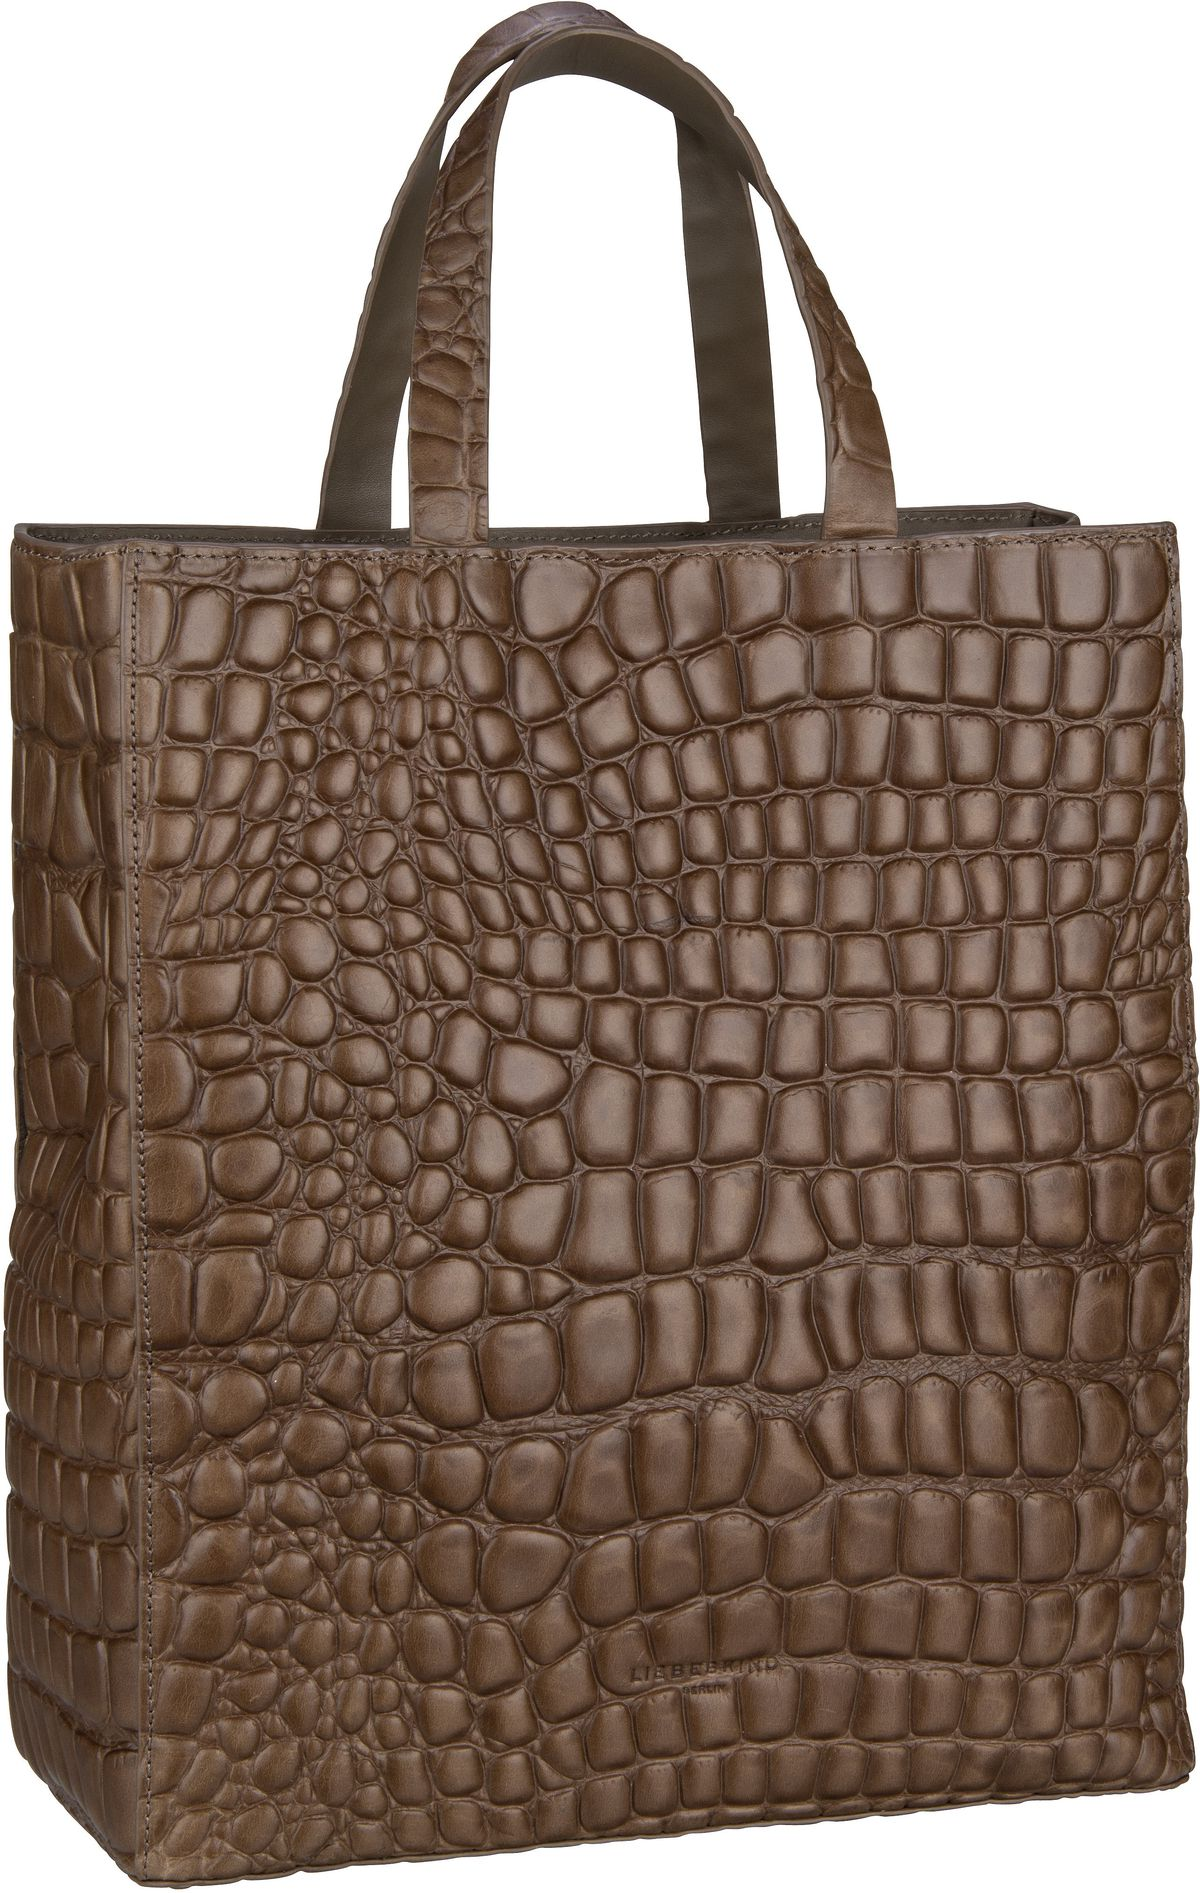 Berlin Shopper Paper Bag Croco Tote M Taupe